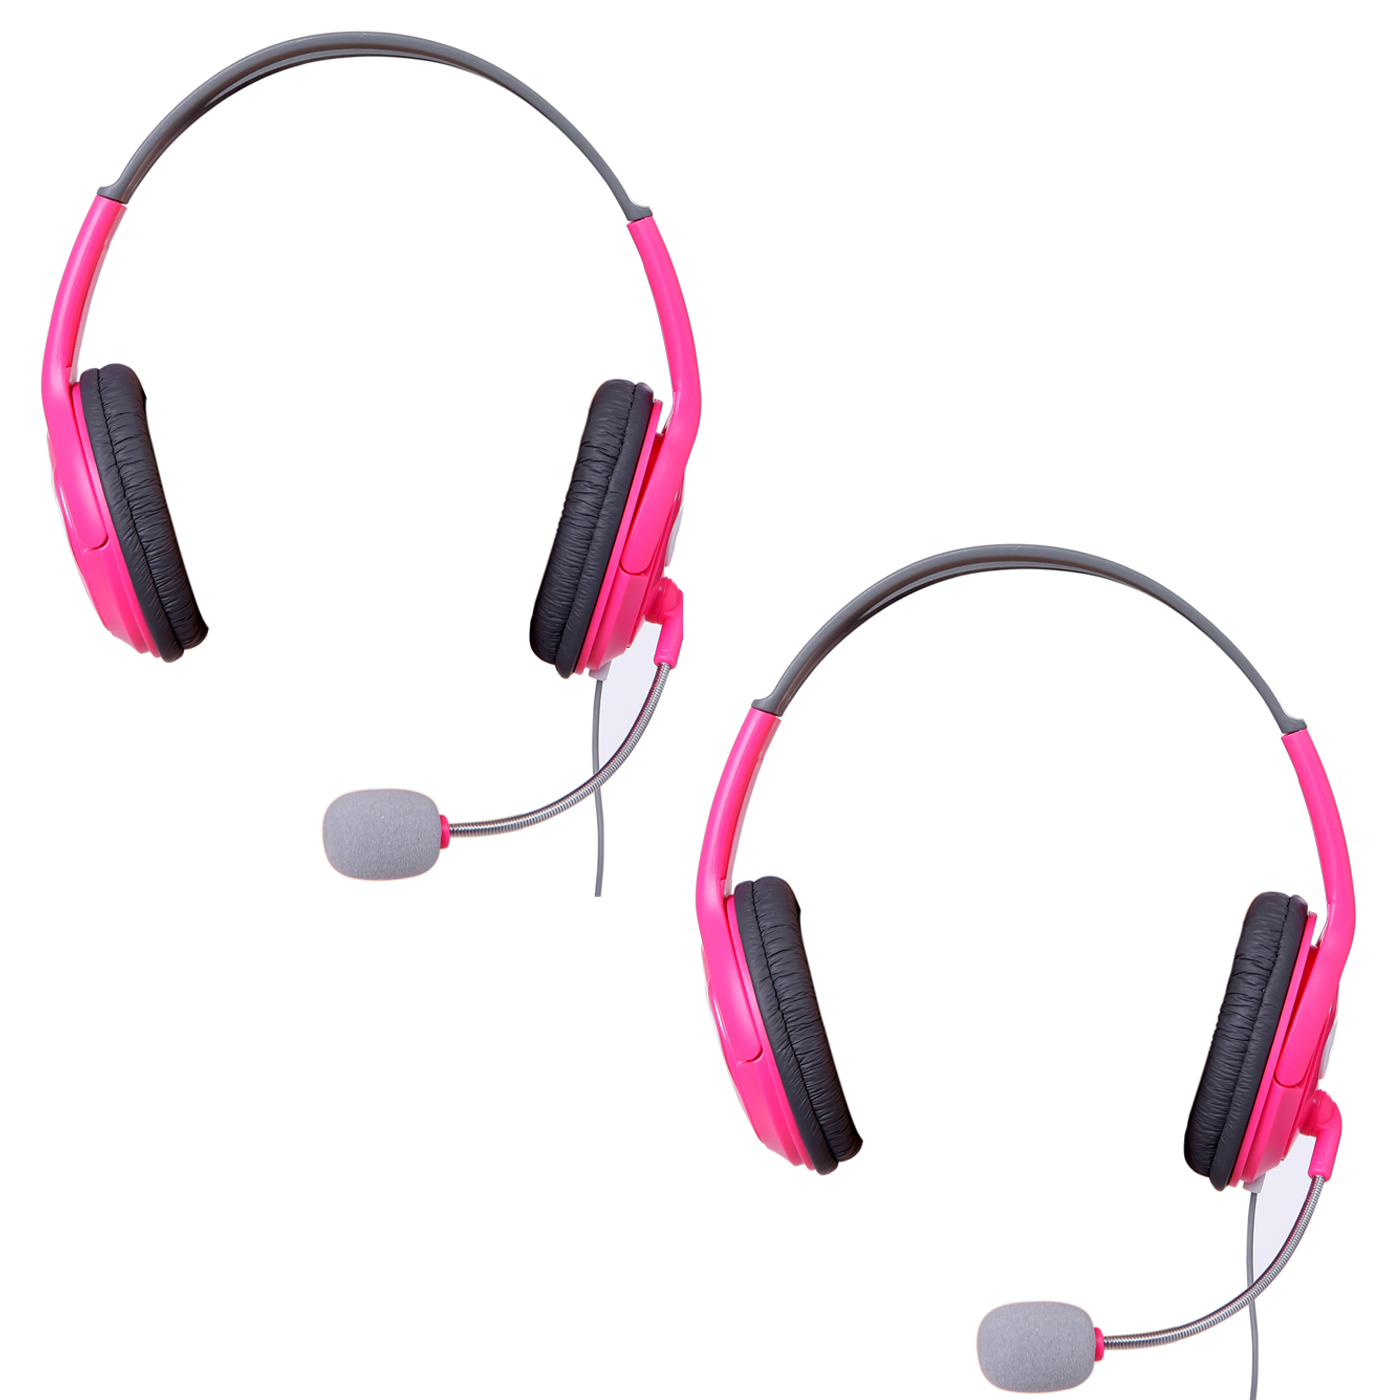 HDE 2-Pack Xbox 360 Gaming Chat Headset with Microphone for Xbox Live - Green